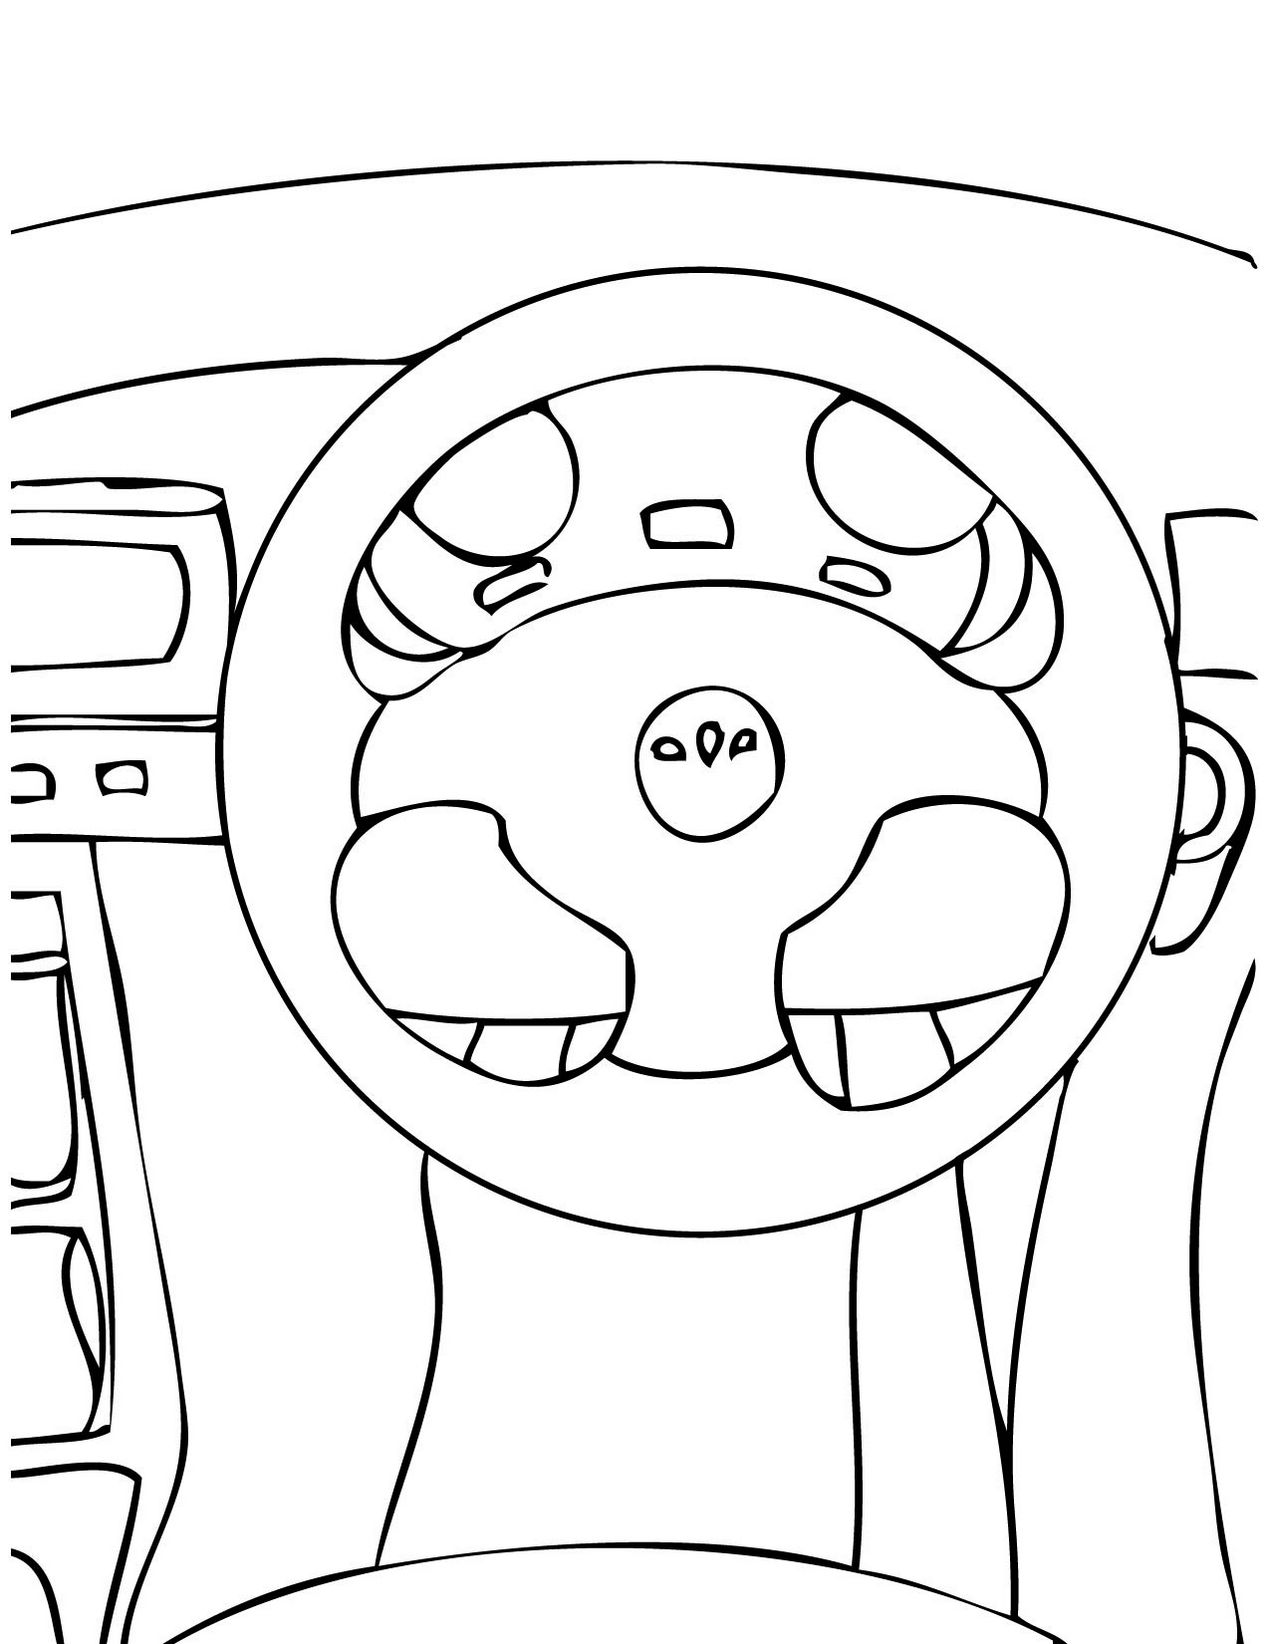 steering_wheel_parts_of_auto_print_out_drawing